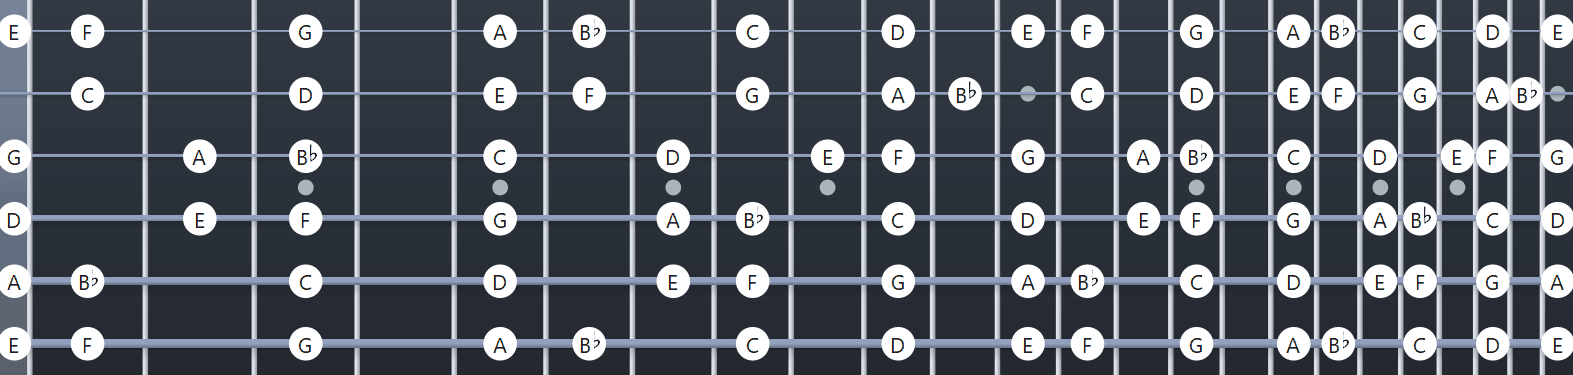 F major scale full fretboard diagram